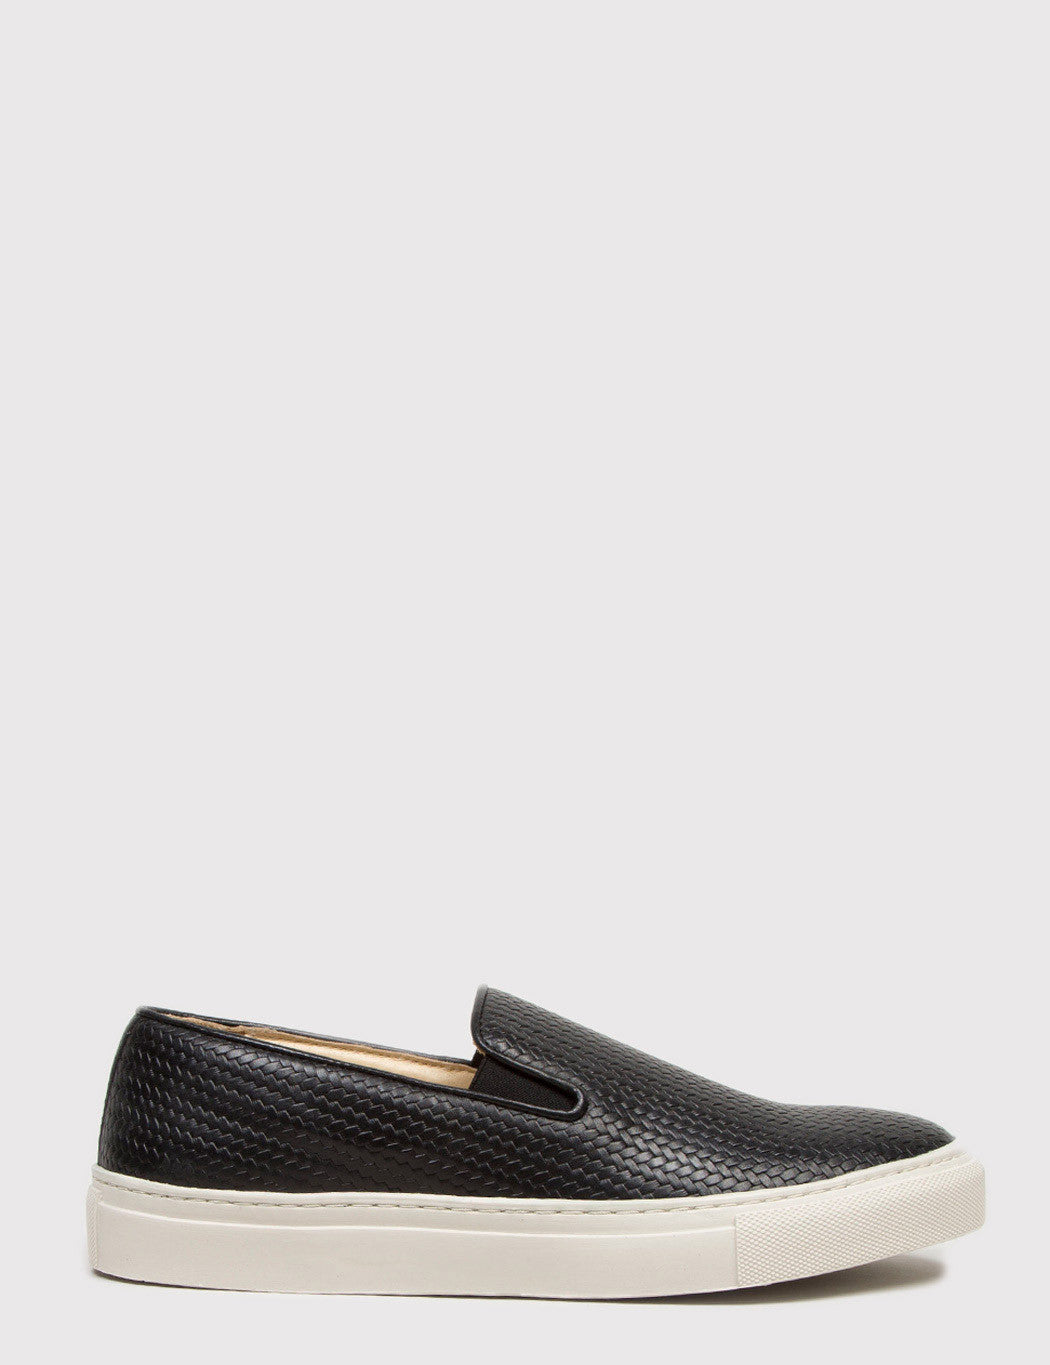 Hudson Hannuk II Leather Slip-On Shoes - Black